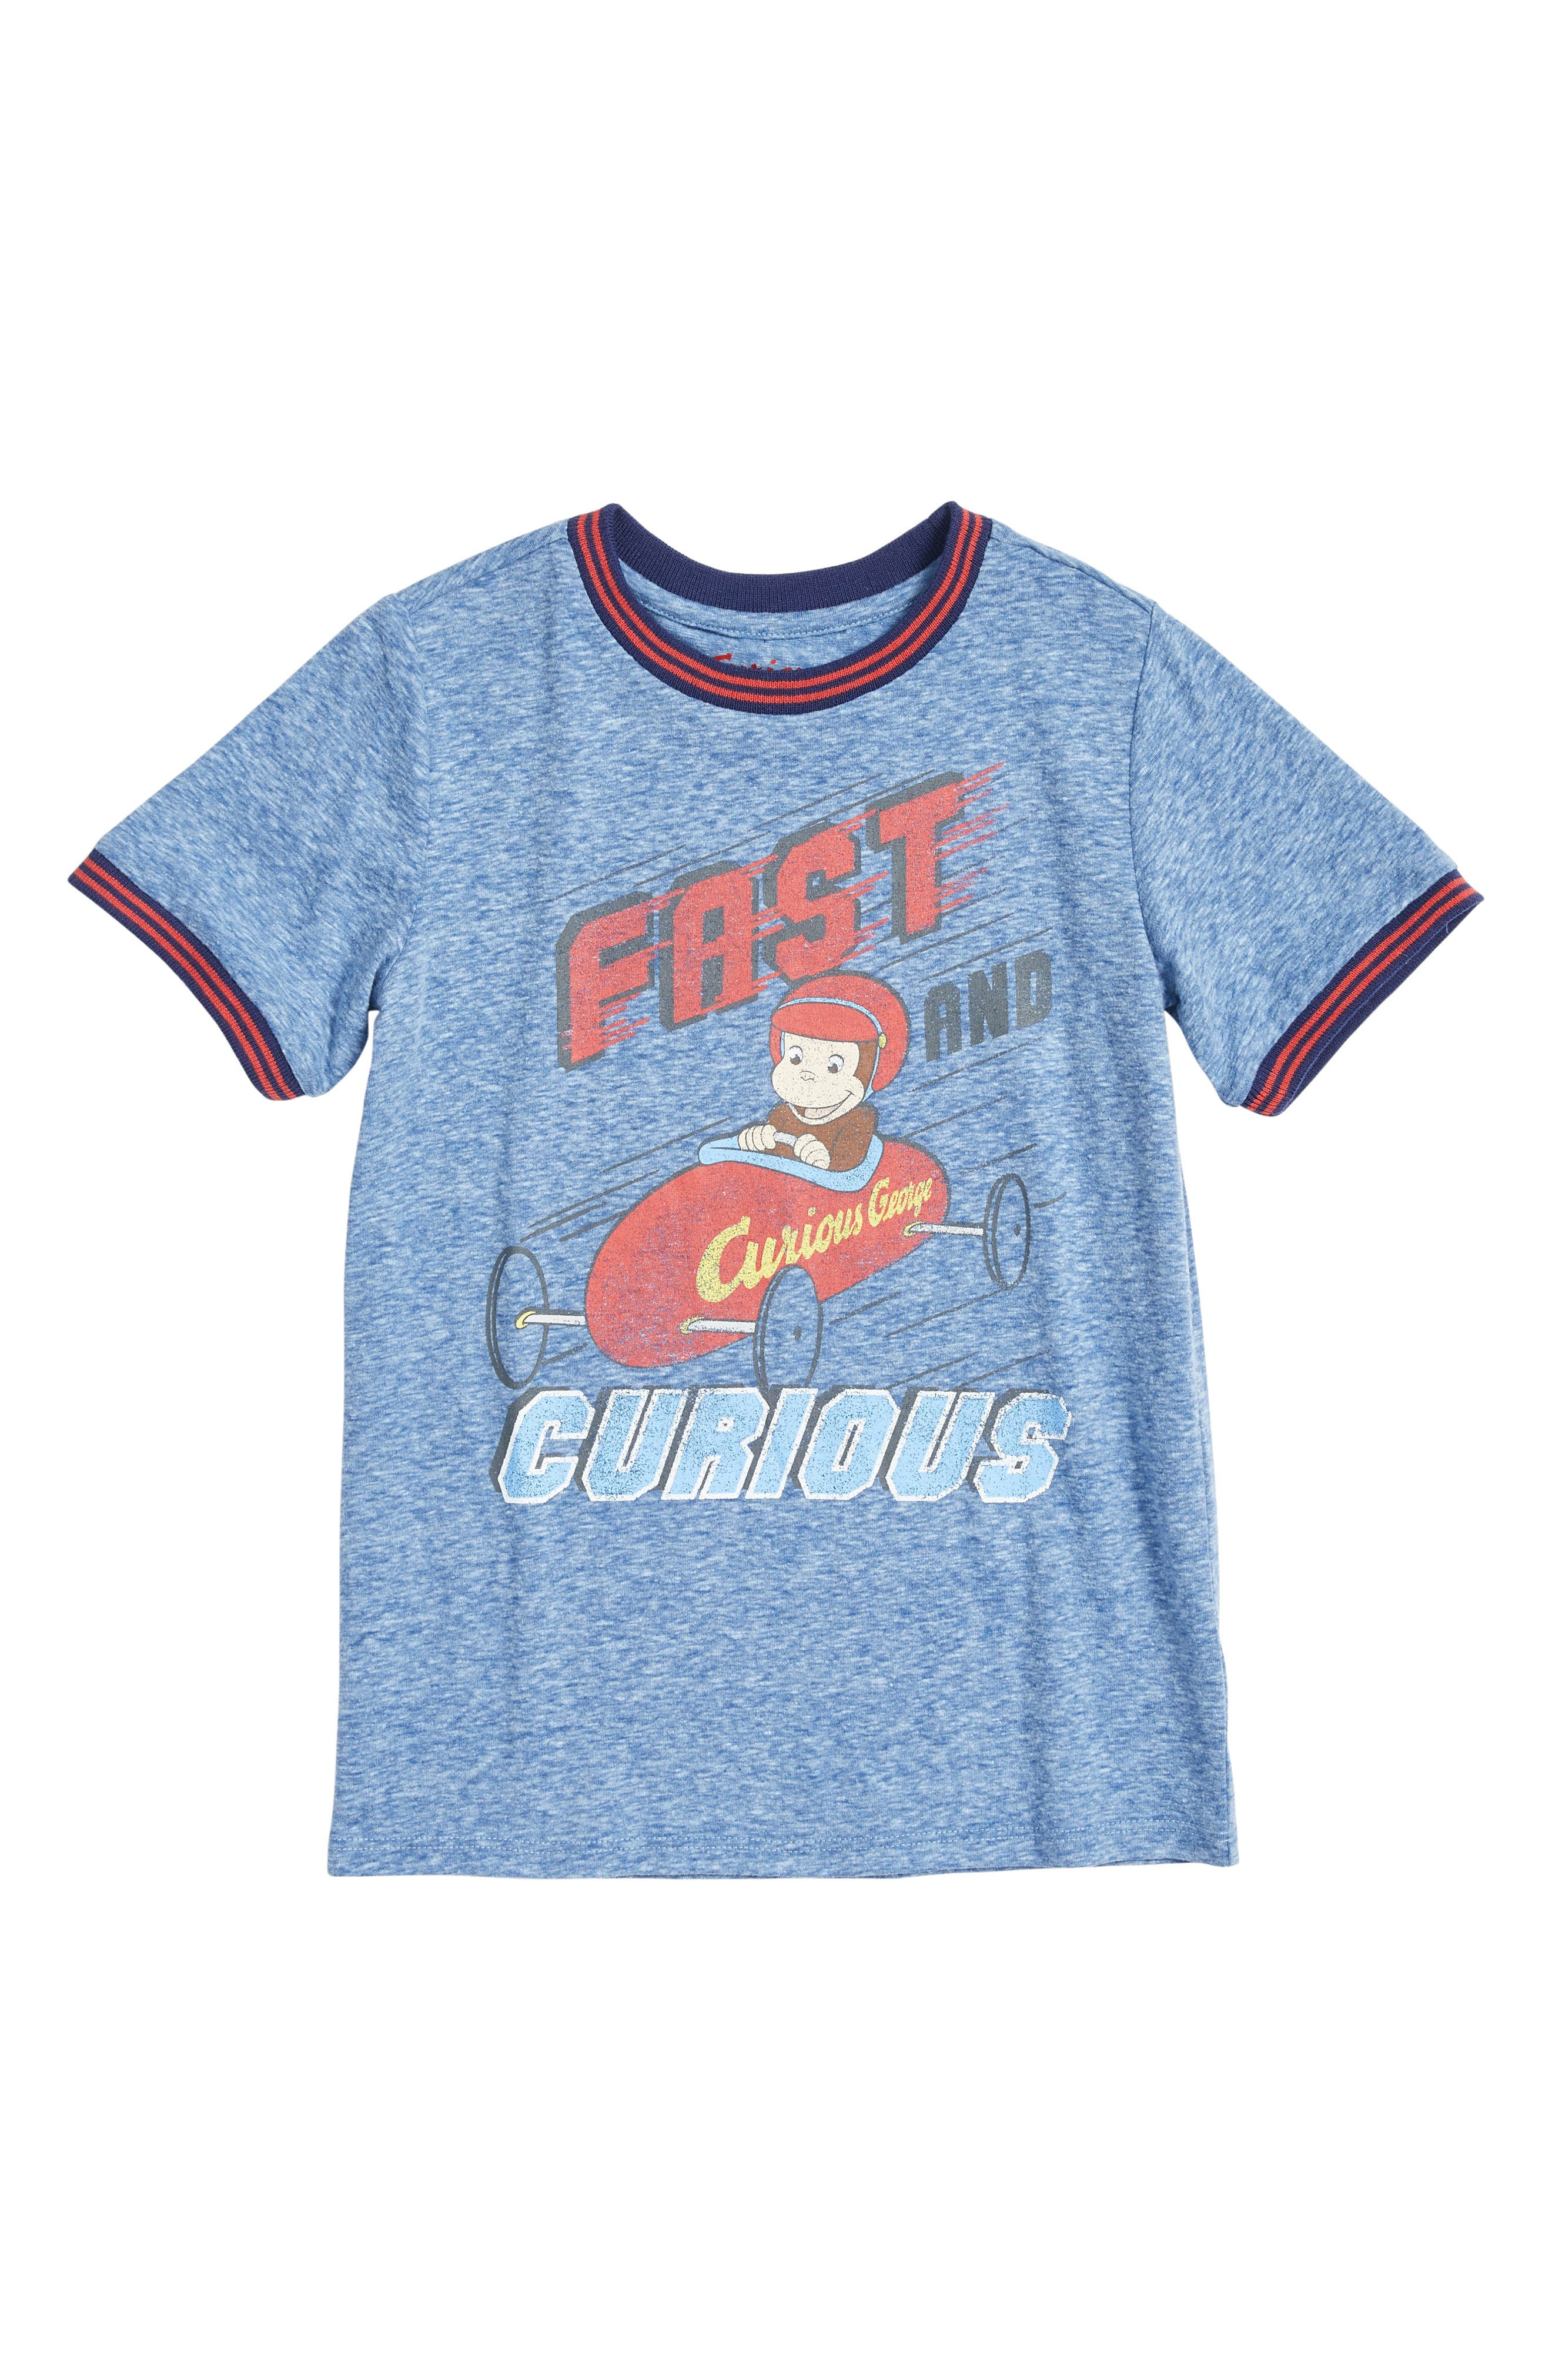 Fast & Curious George Graphic T-Shirt,                             Main thumbnail 1, color,